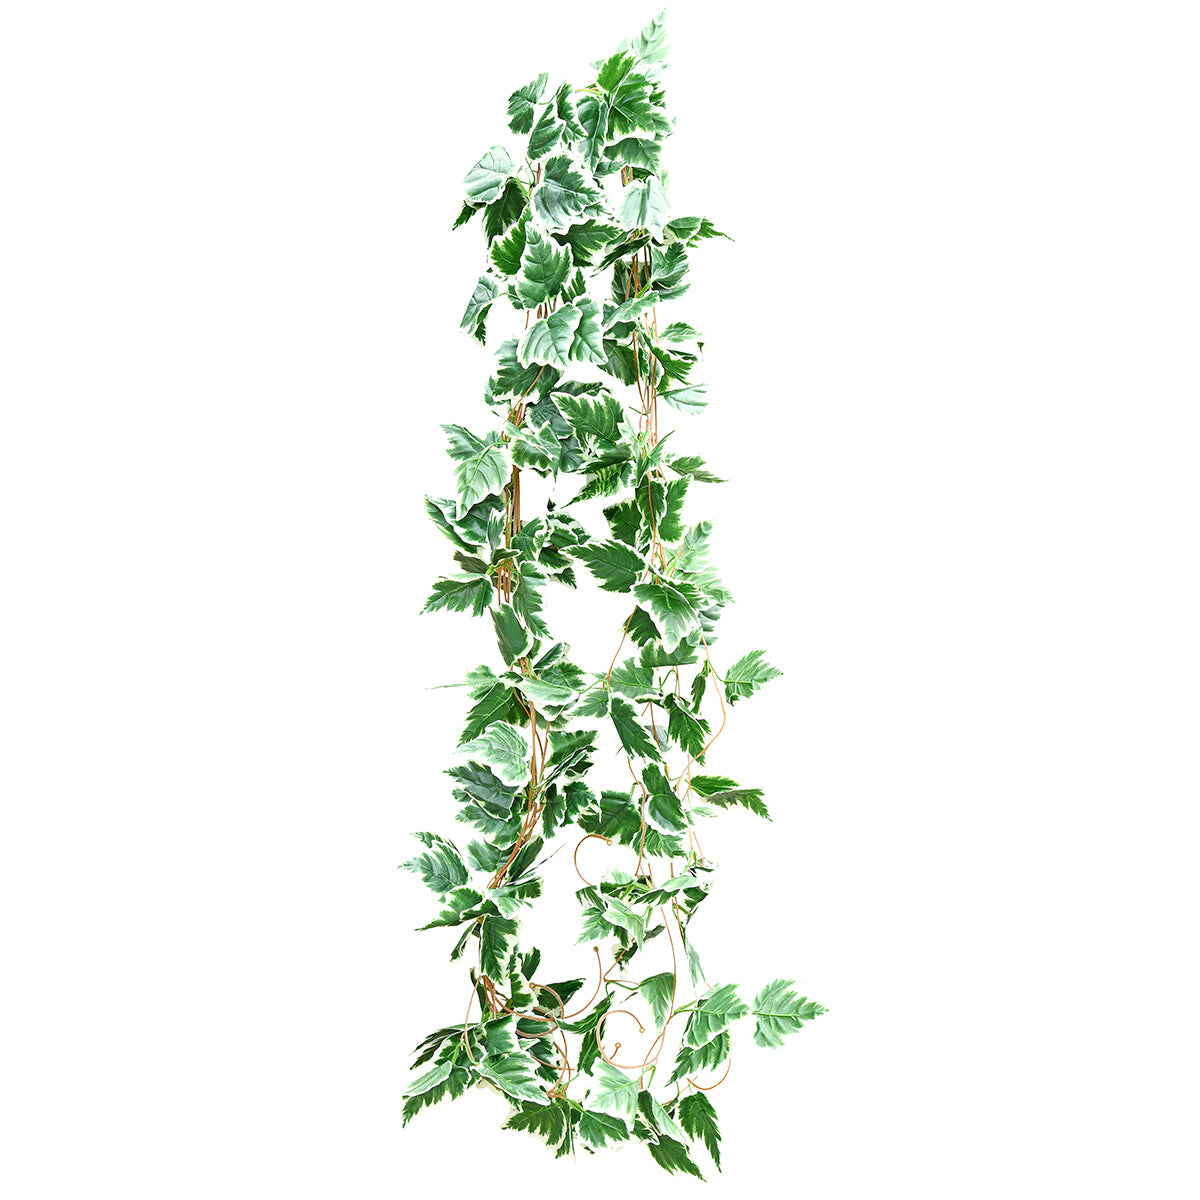 Artificial Hanging Plant White Edge Ivy Leaves Vine Silk Greenery Leaves (12.5m / 41 feet)